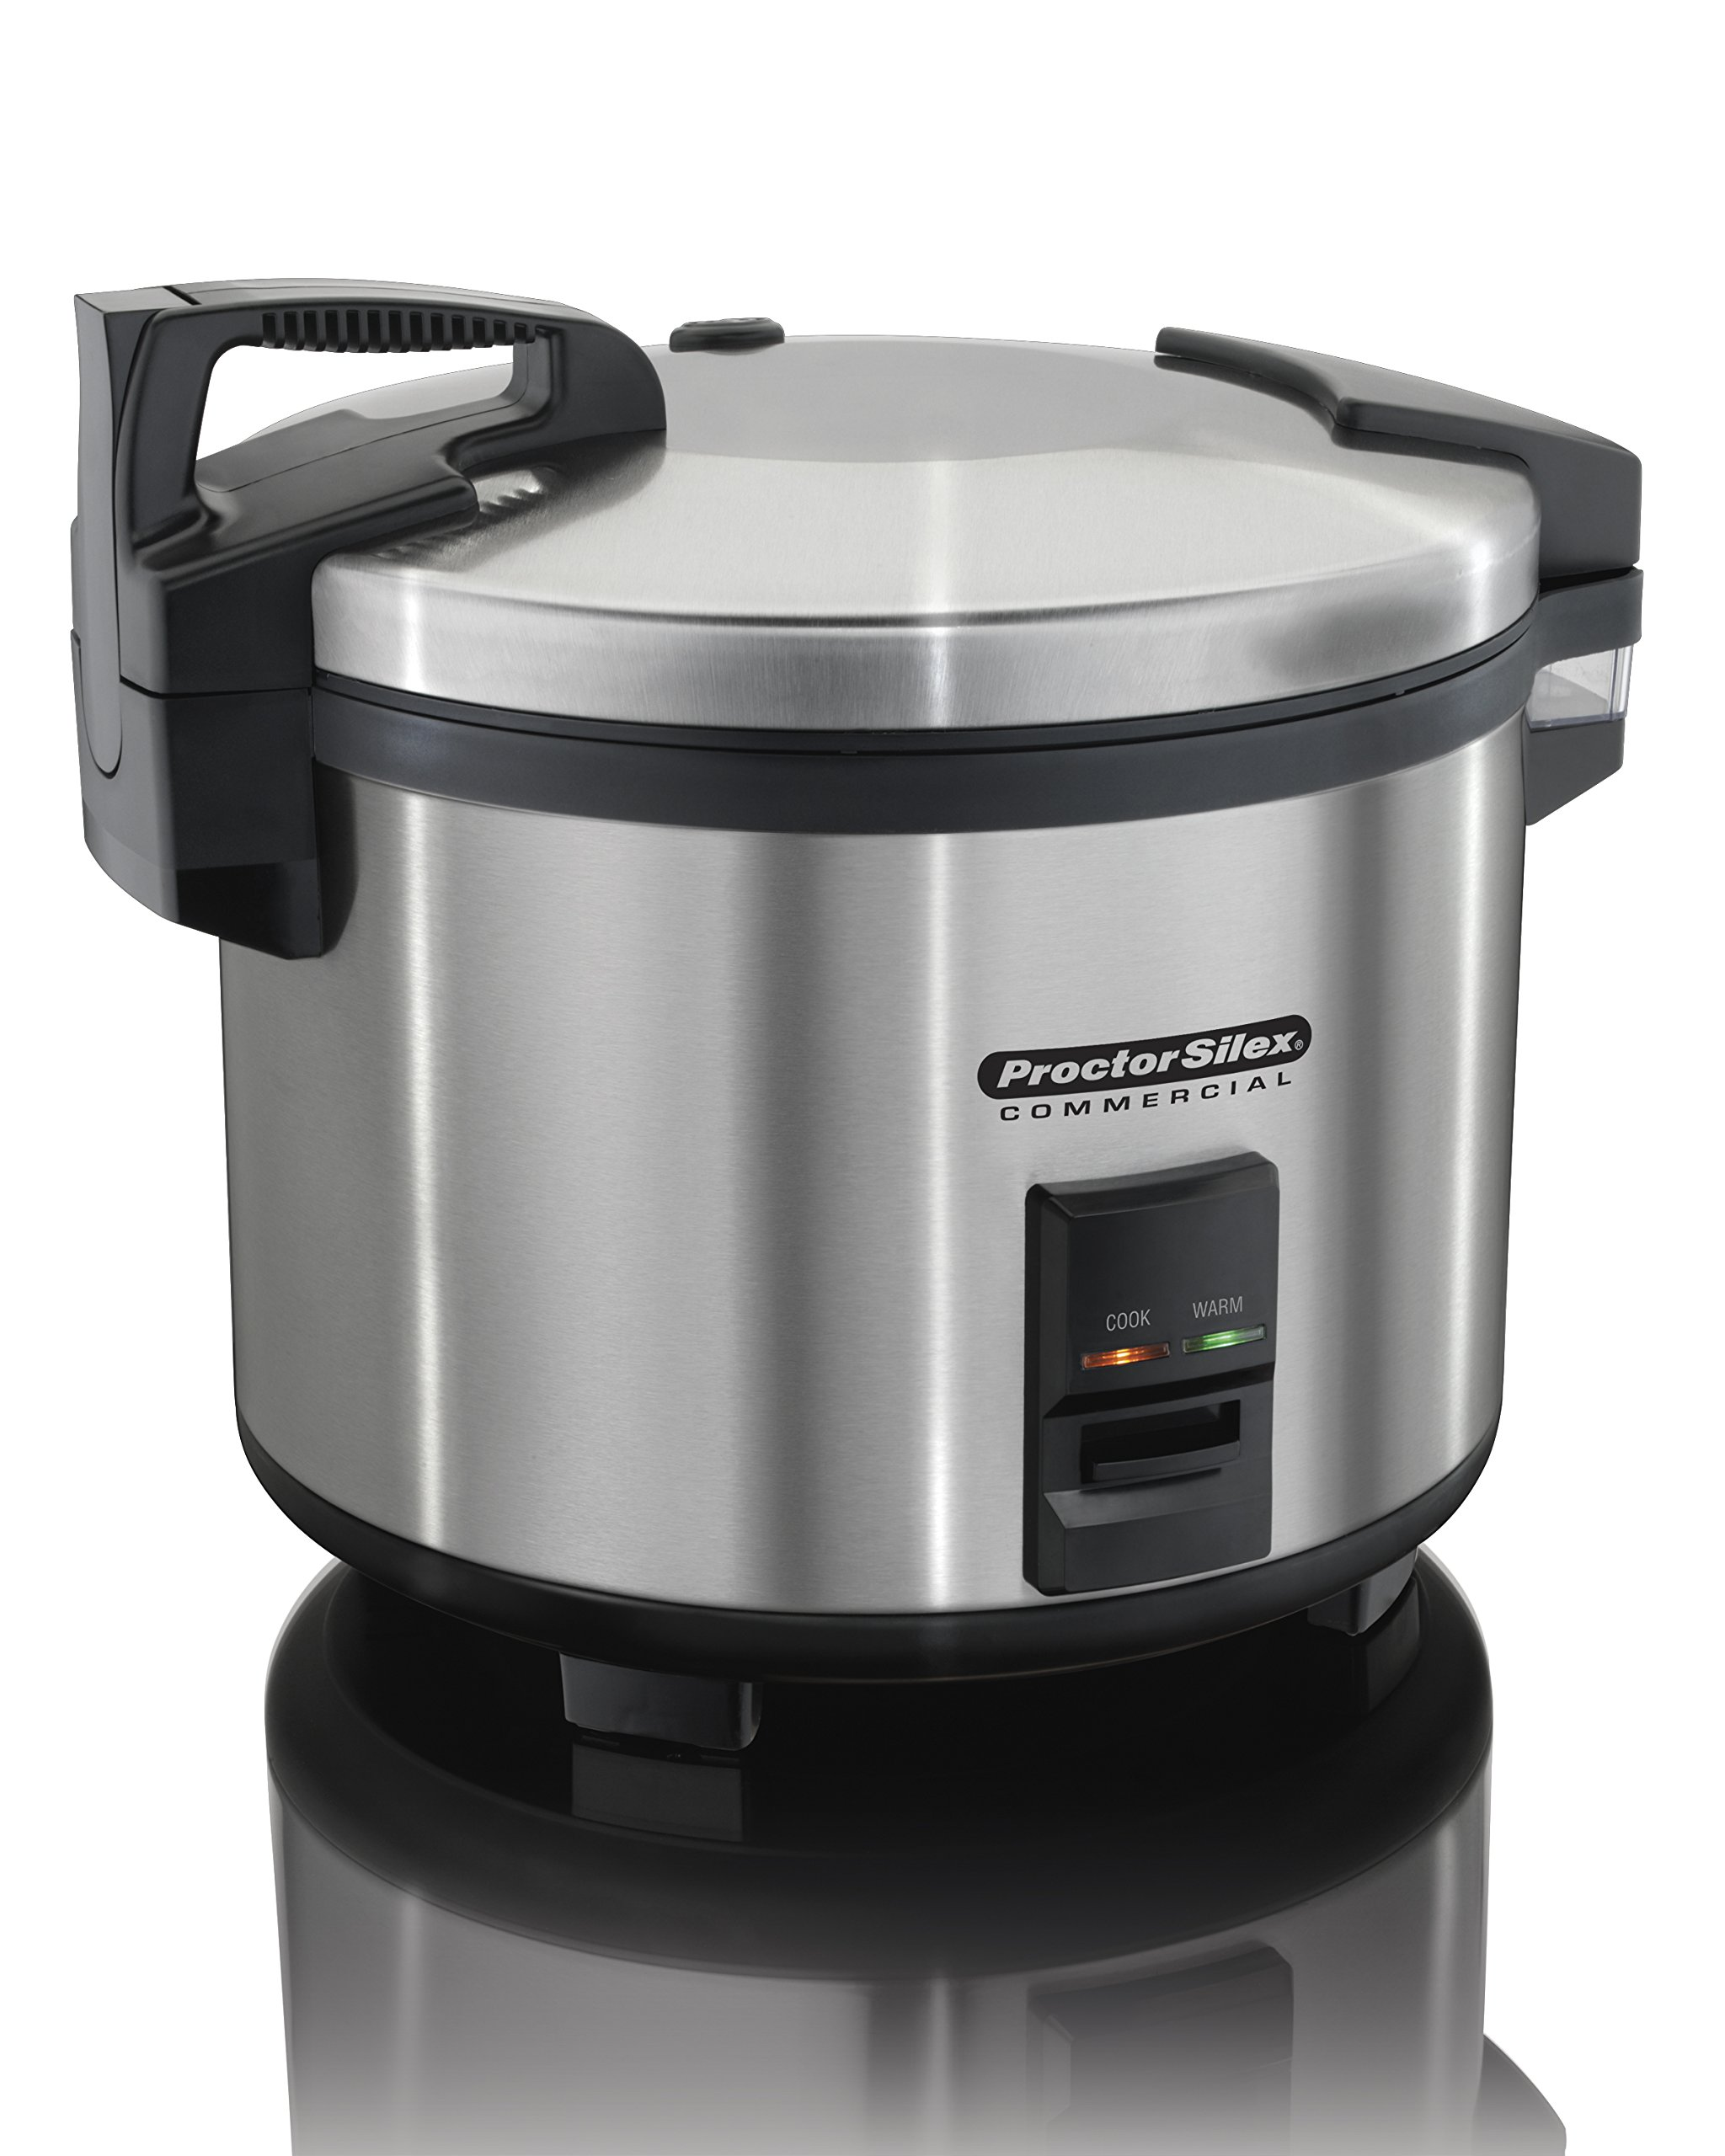 Hamilton Beach Proctor Silex Commercial 37560R Rice Cooker/Warmer, 60 Cups Cooked Rice, Non-Stick Pot, Hinged Lid, Stainless Steel Housing, 1 Year Warranty